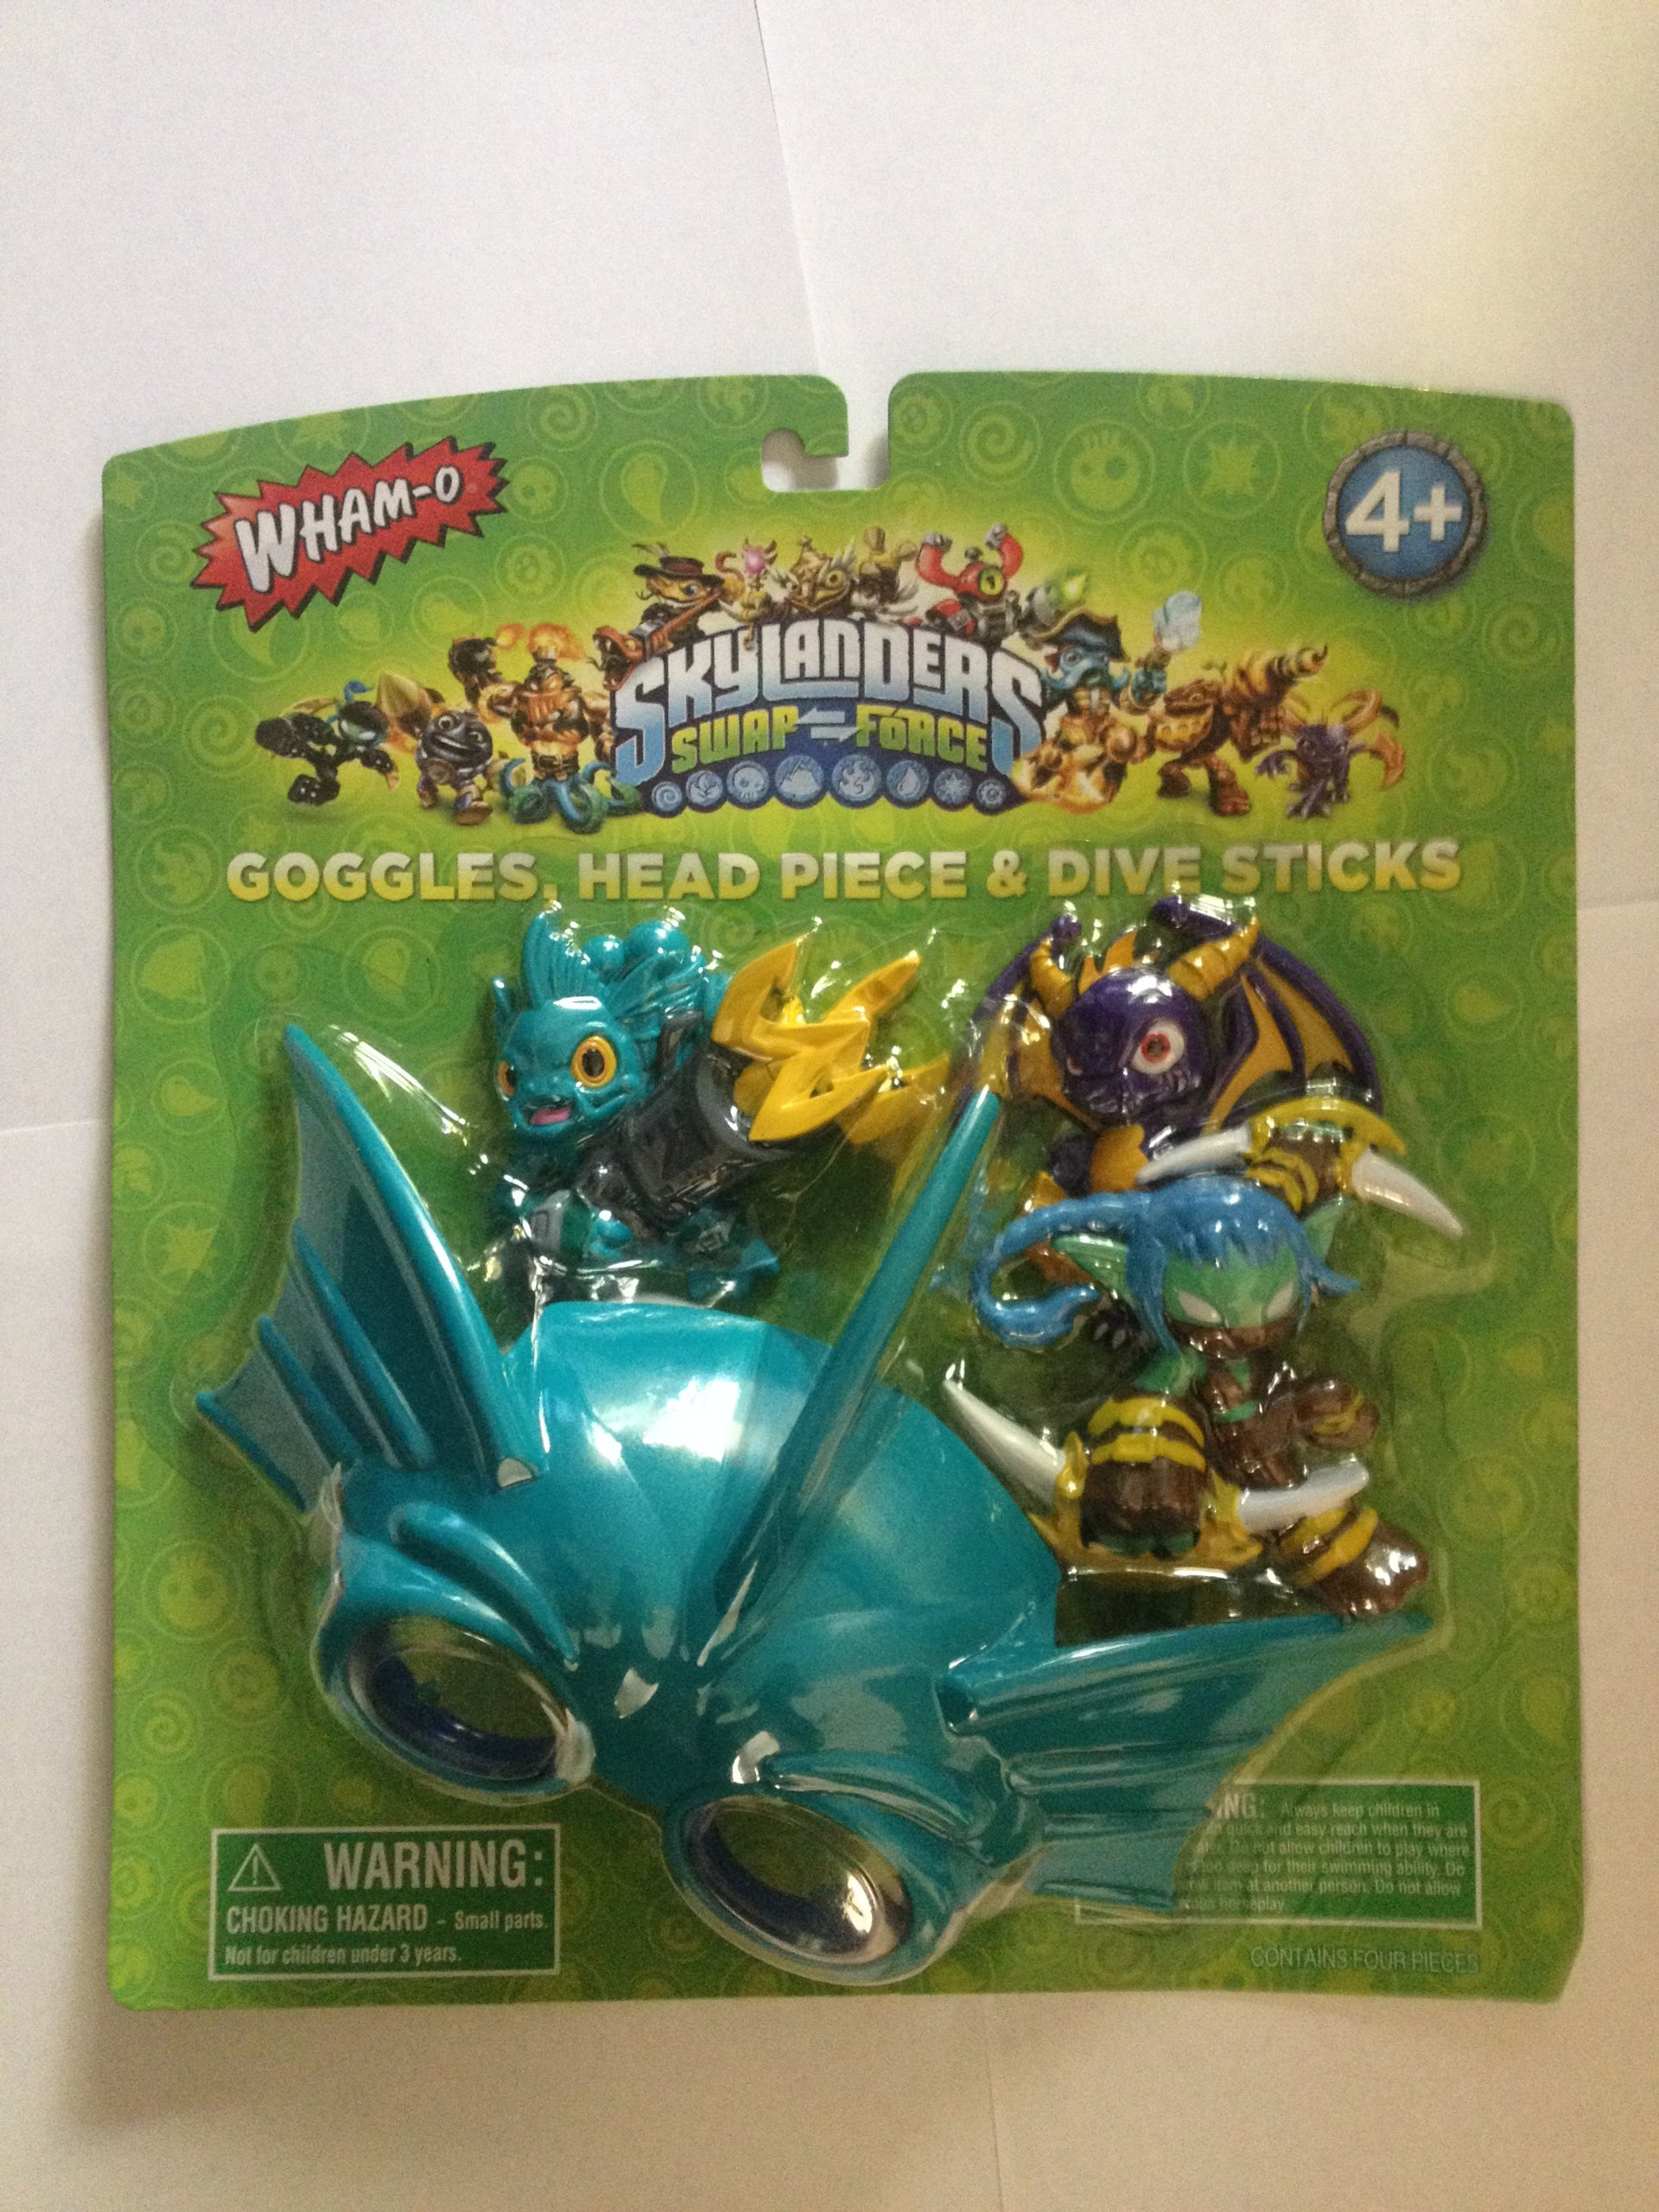 Skylanders Swap-force Goggle and Dive Stick Set by The Wish Factory